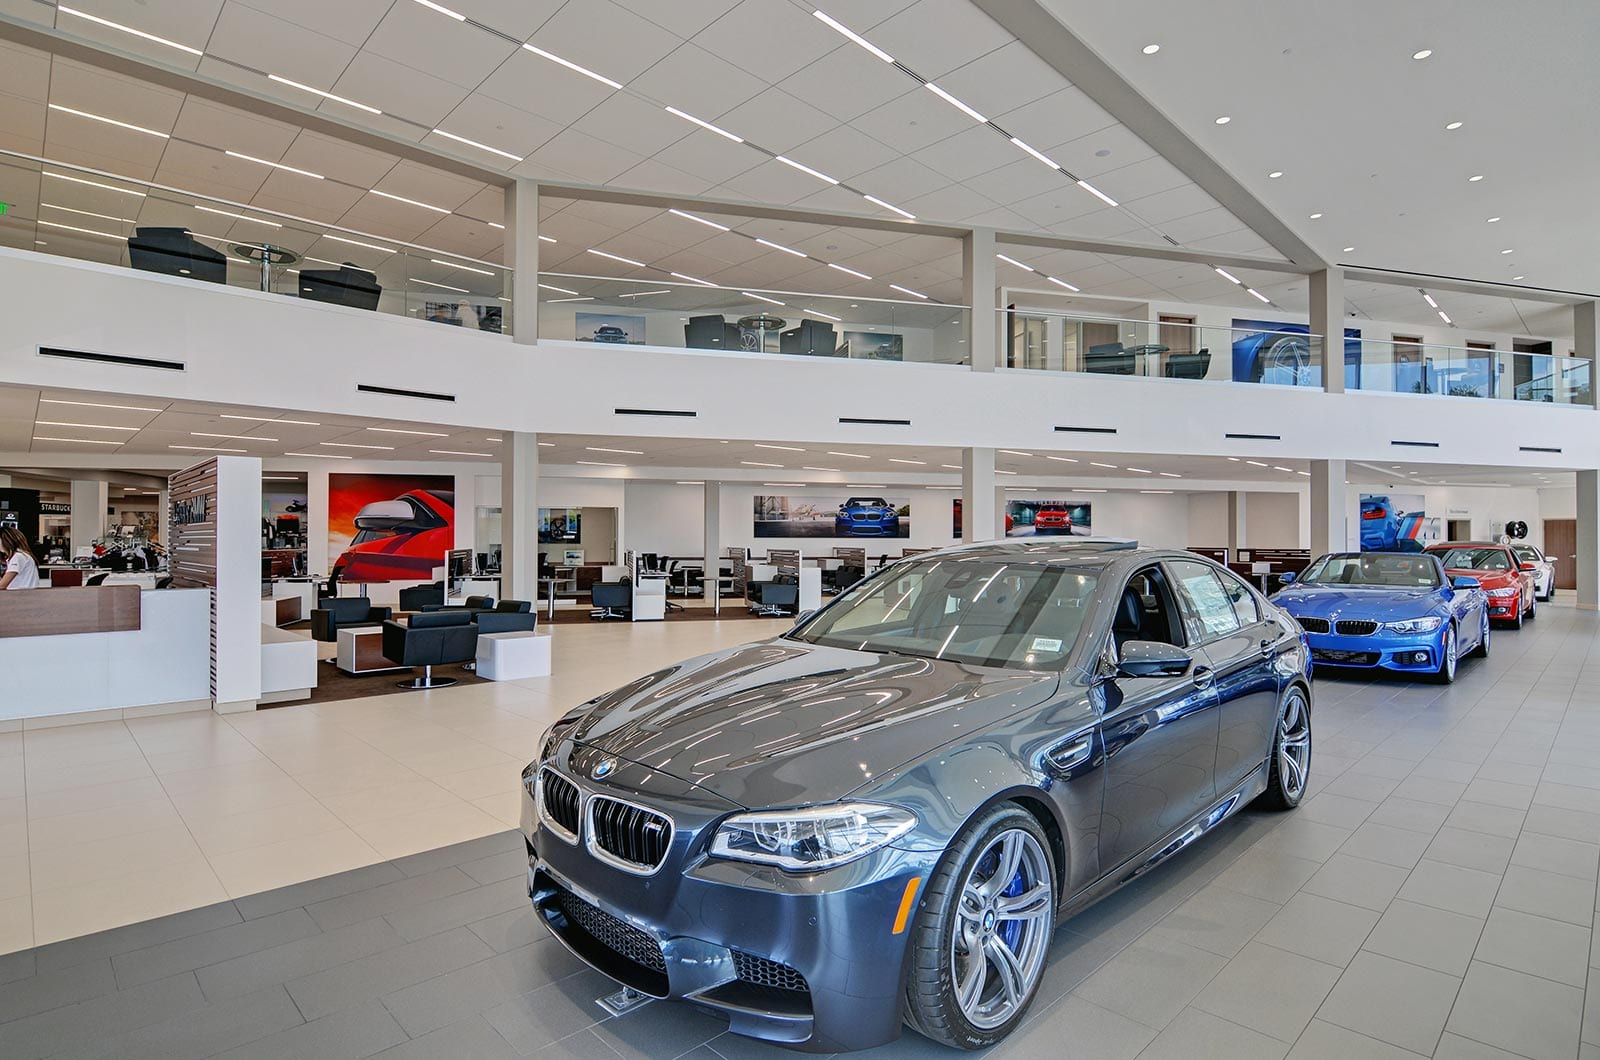 Garage Automobile Tours Bmw Virtual Tour Auto Dealership Virtual Tour